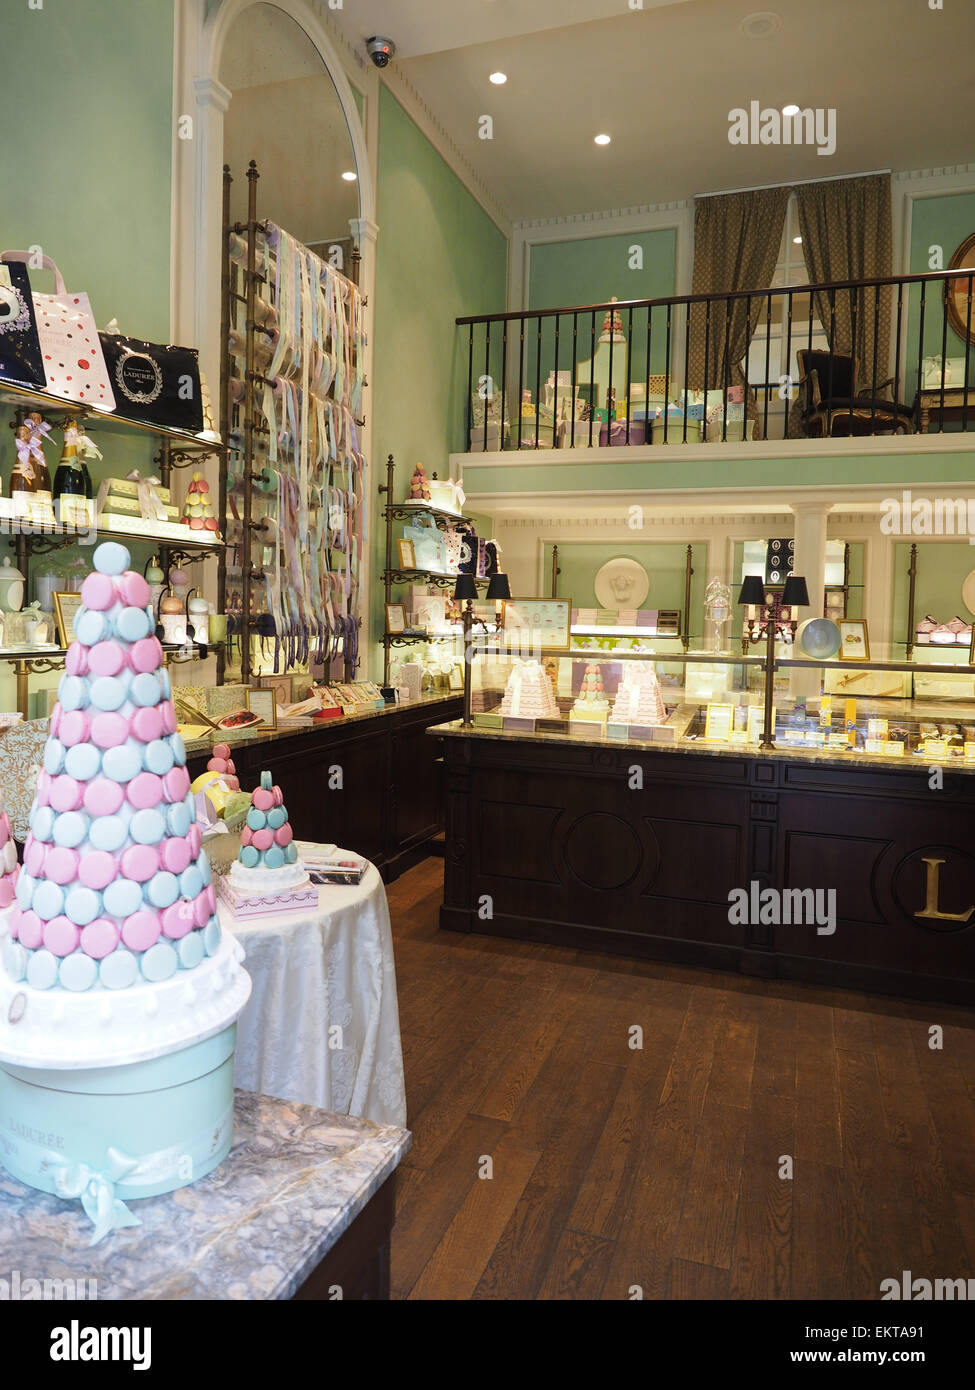 Ladurée Pastry shop, Milan, Lombardy, Italy, Europe - Stock Image